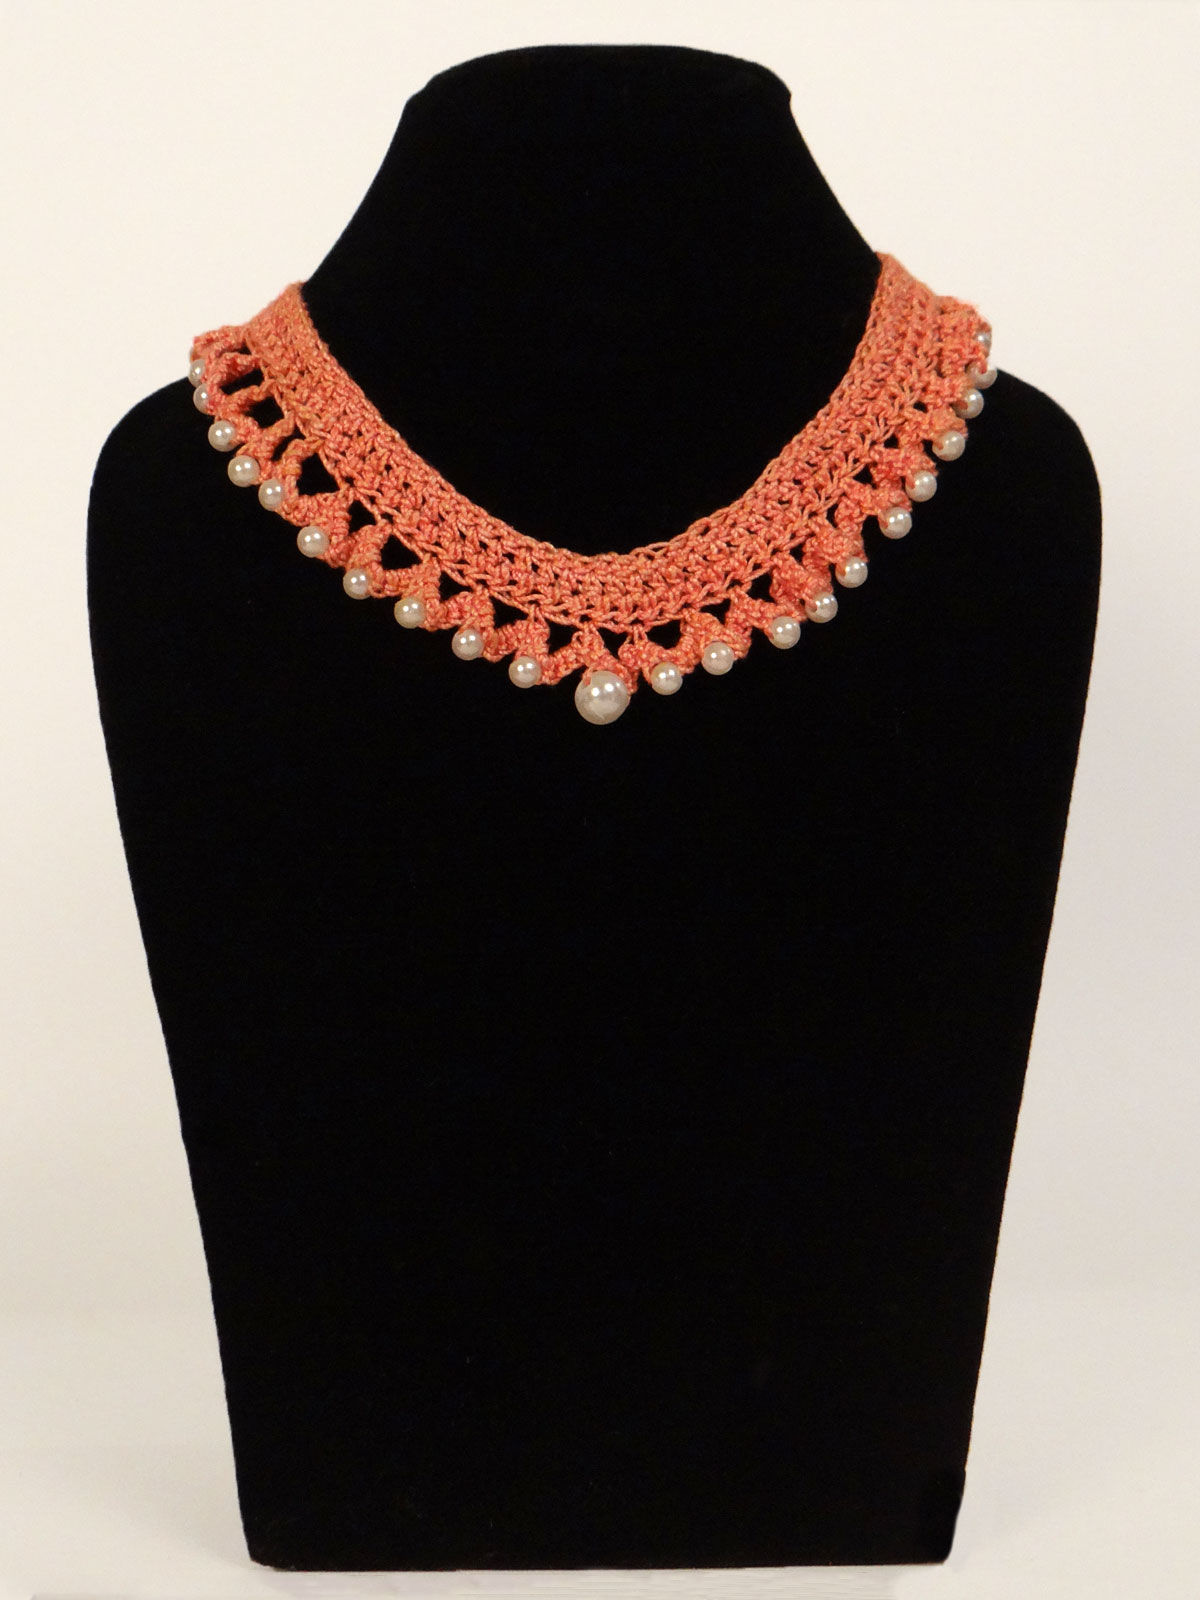 Orange crochet fabric necklace with white pearls.